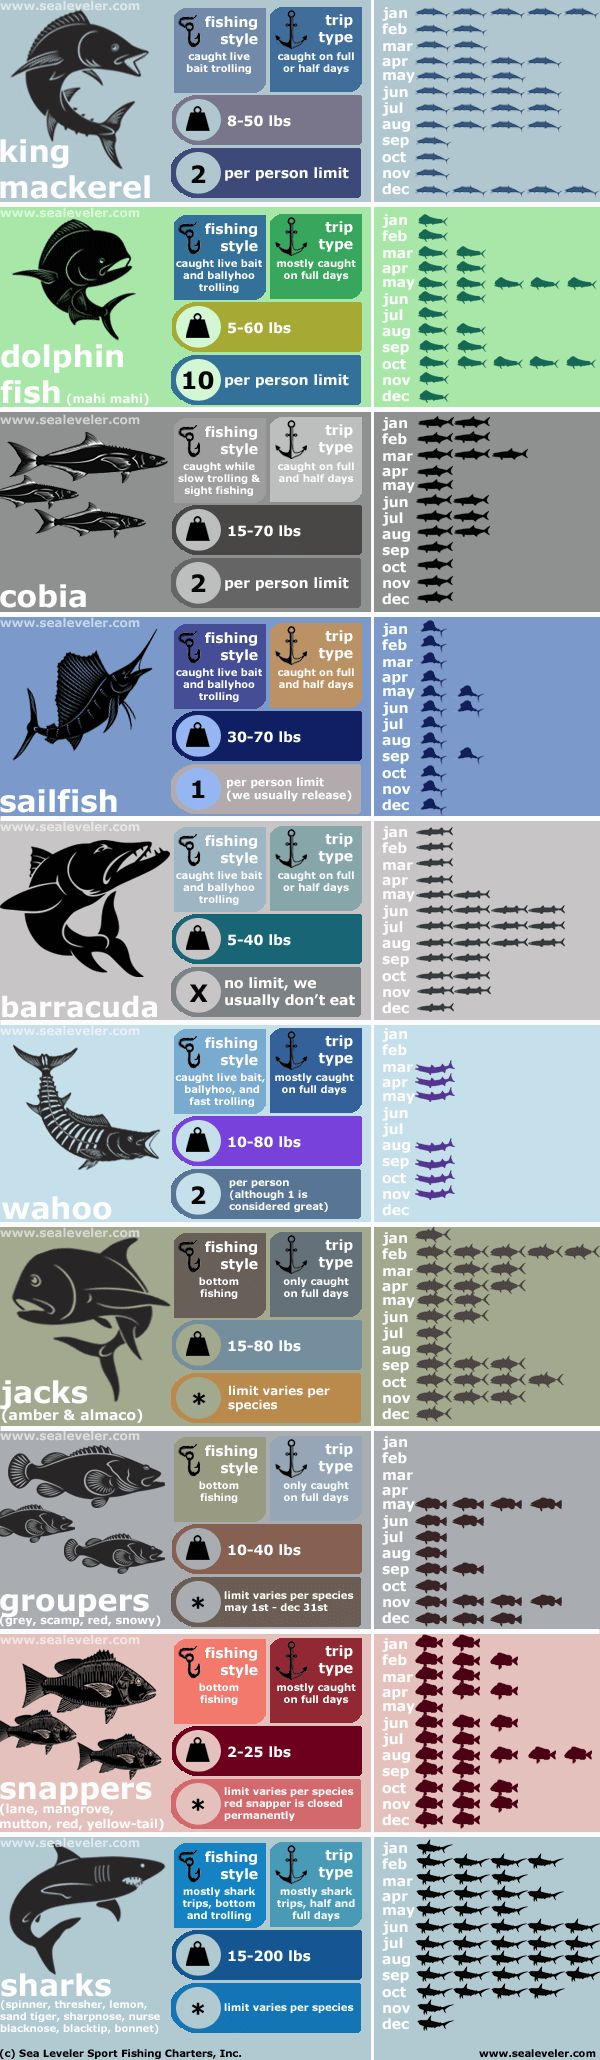 fish caught by month infographic - http://www.sealeveler.com/fish-caught-by-month.html